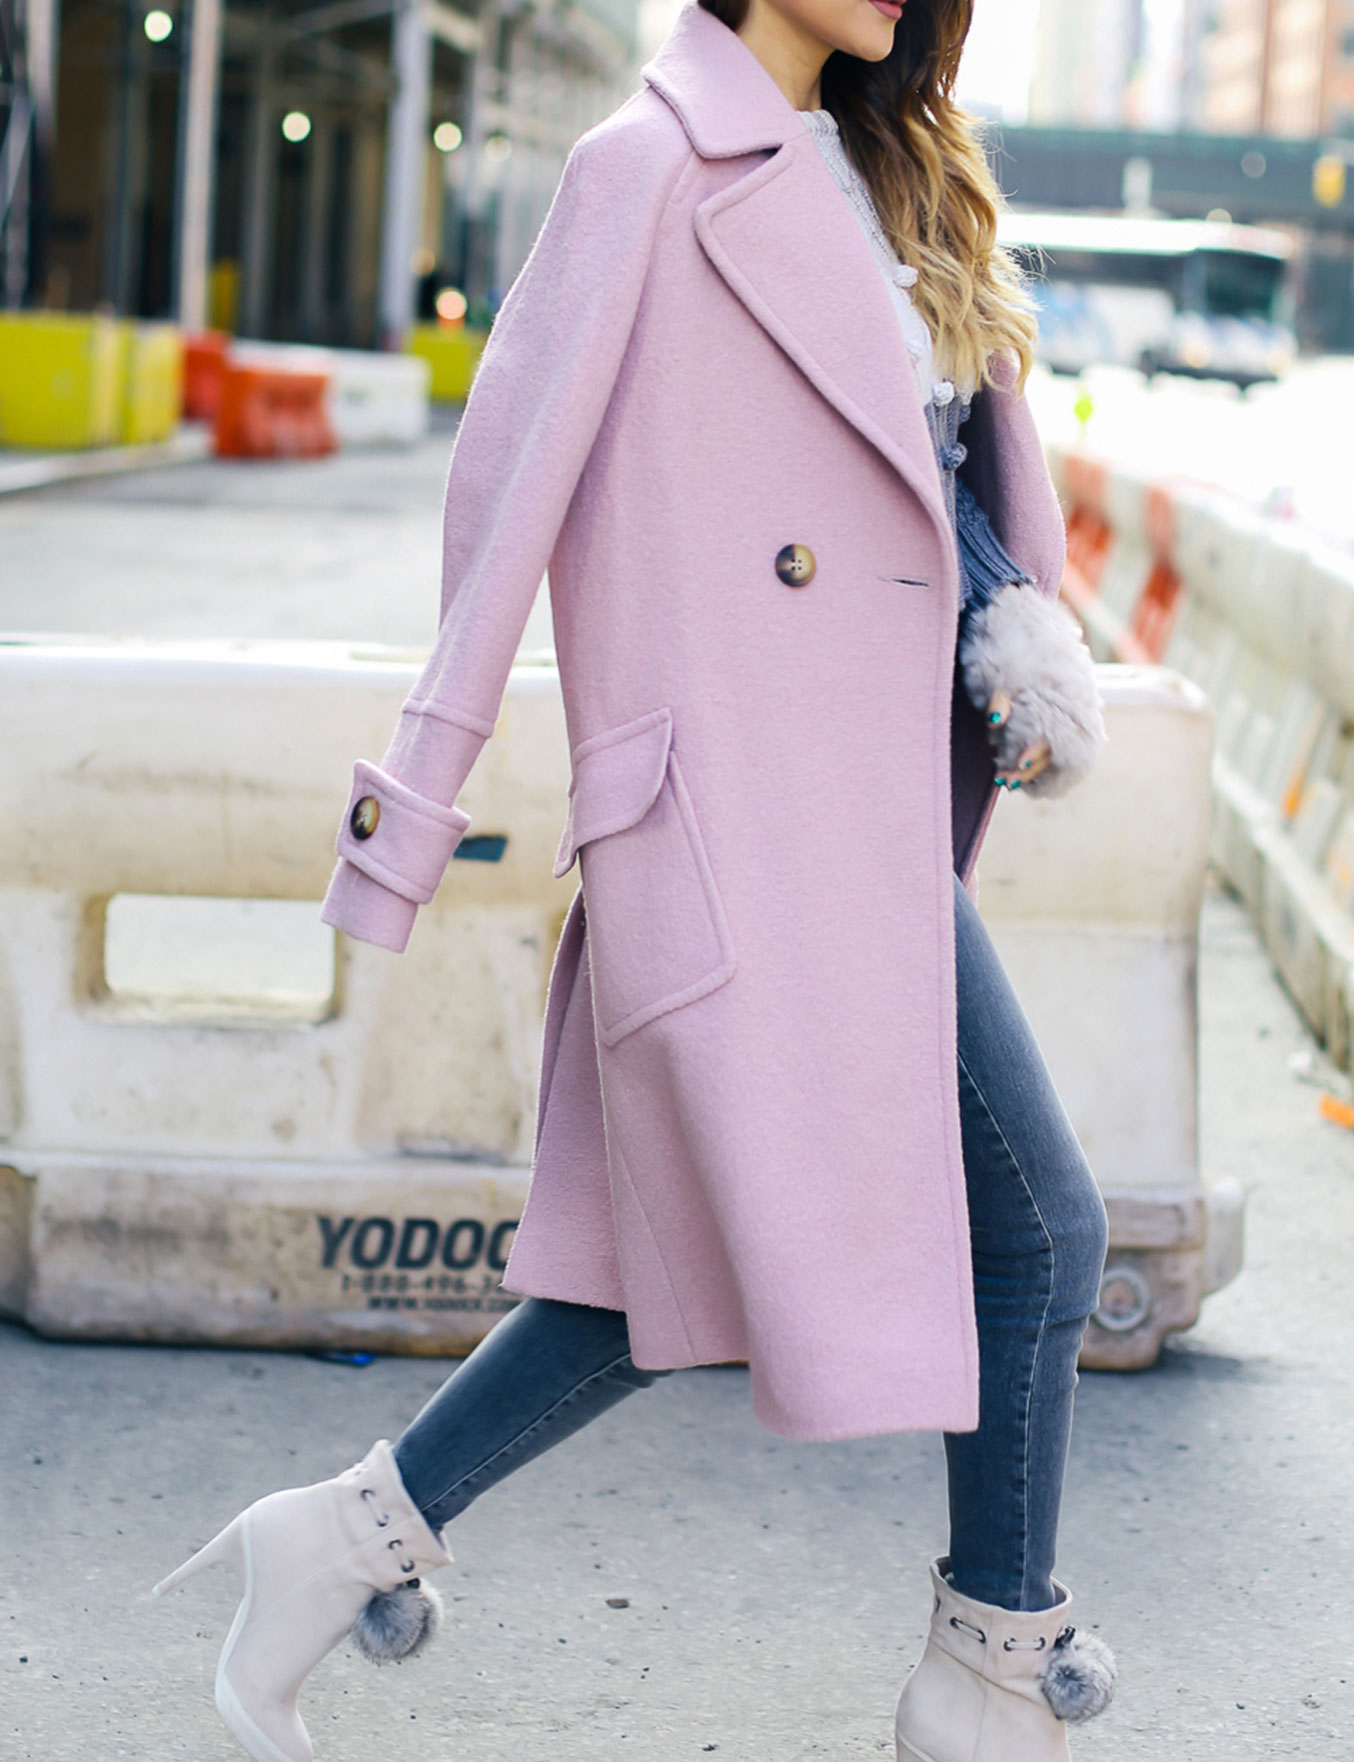 Chic Colorful Coats - Pink Coat with White Fur Boots // Notjessfashion.com